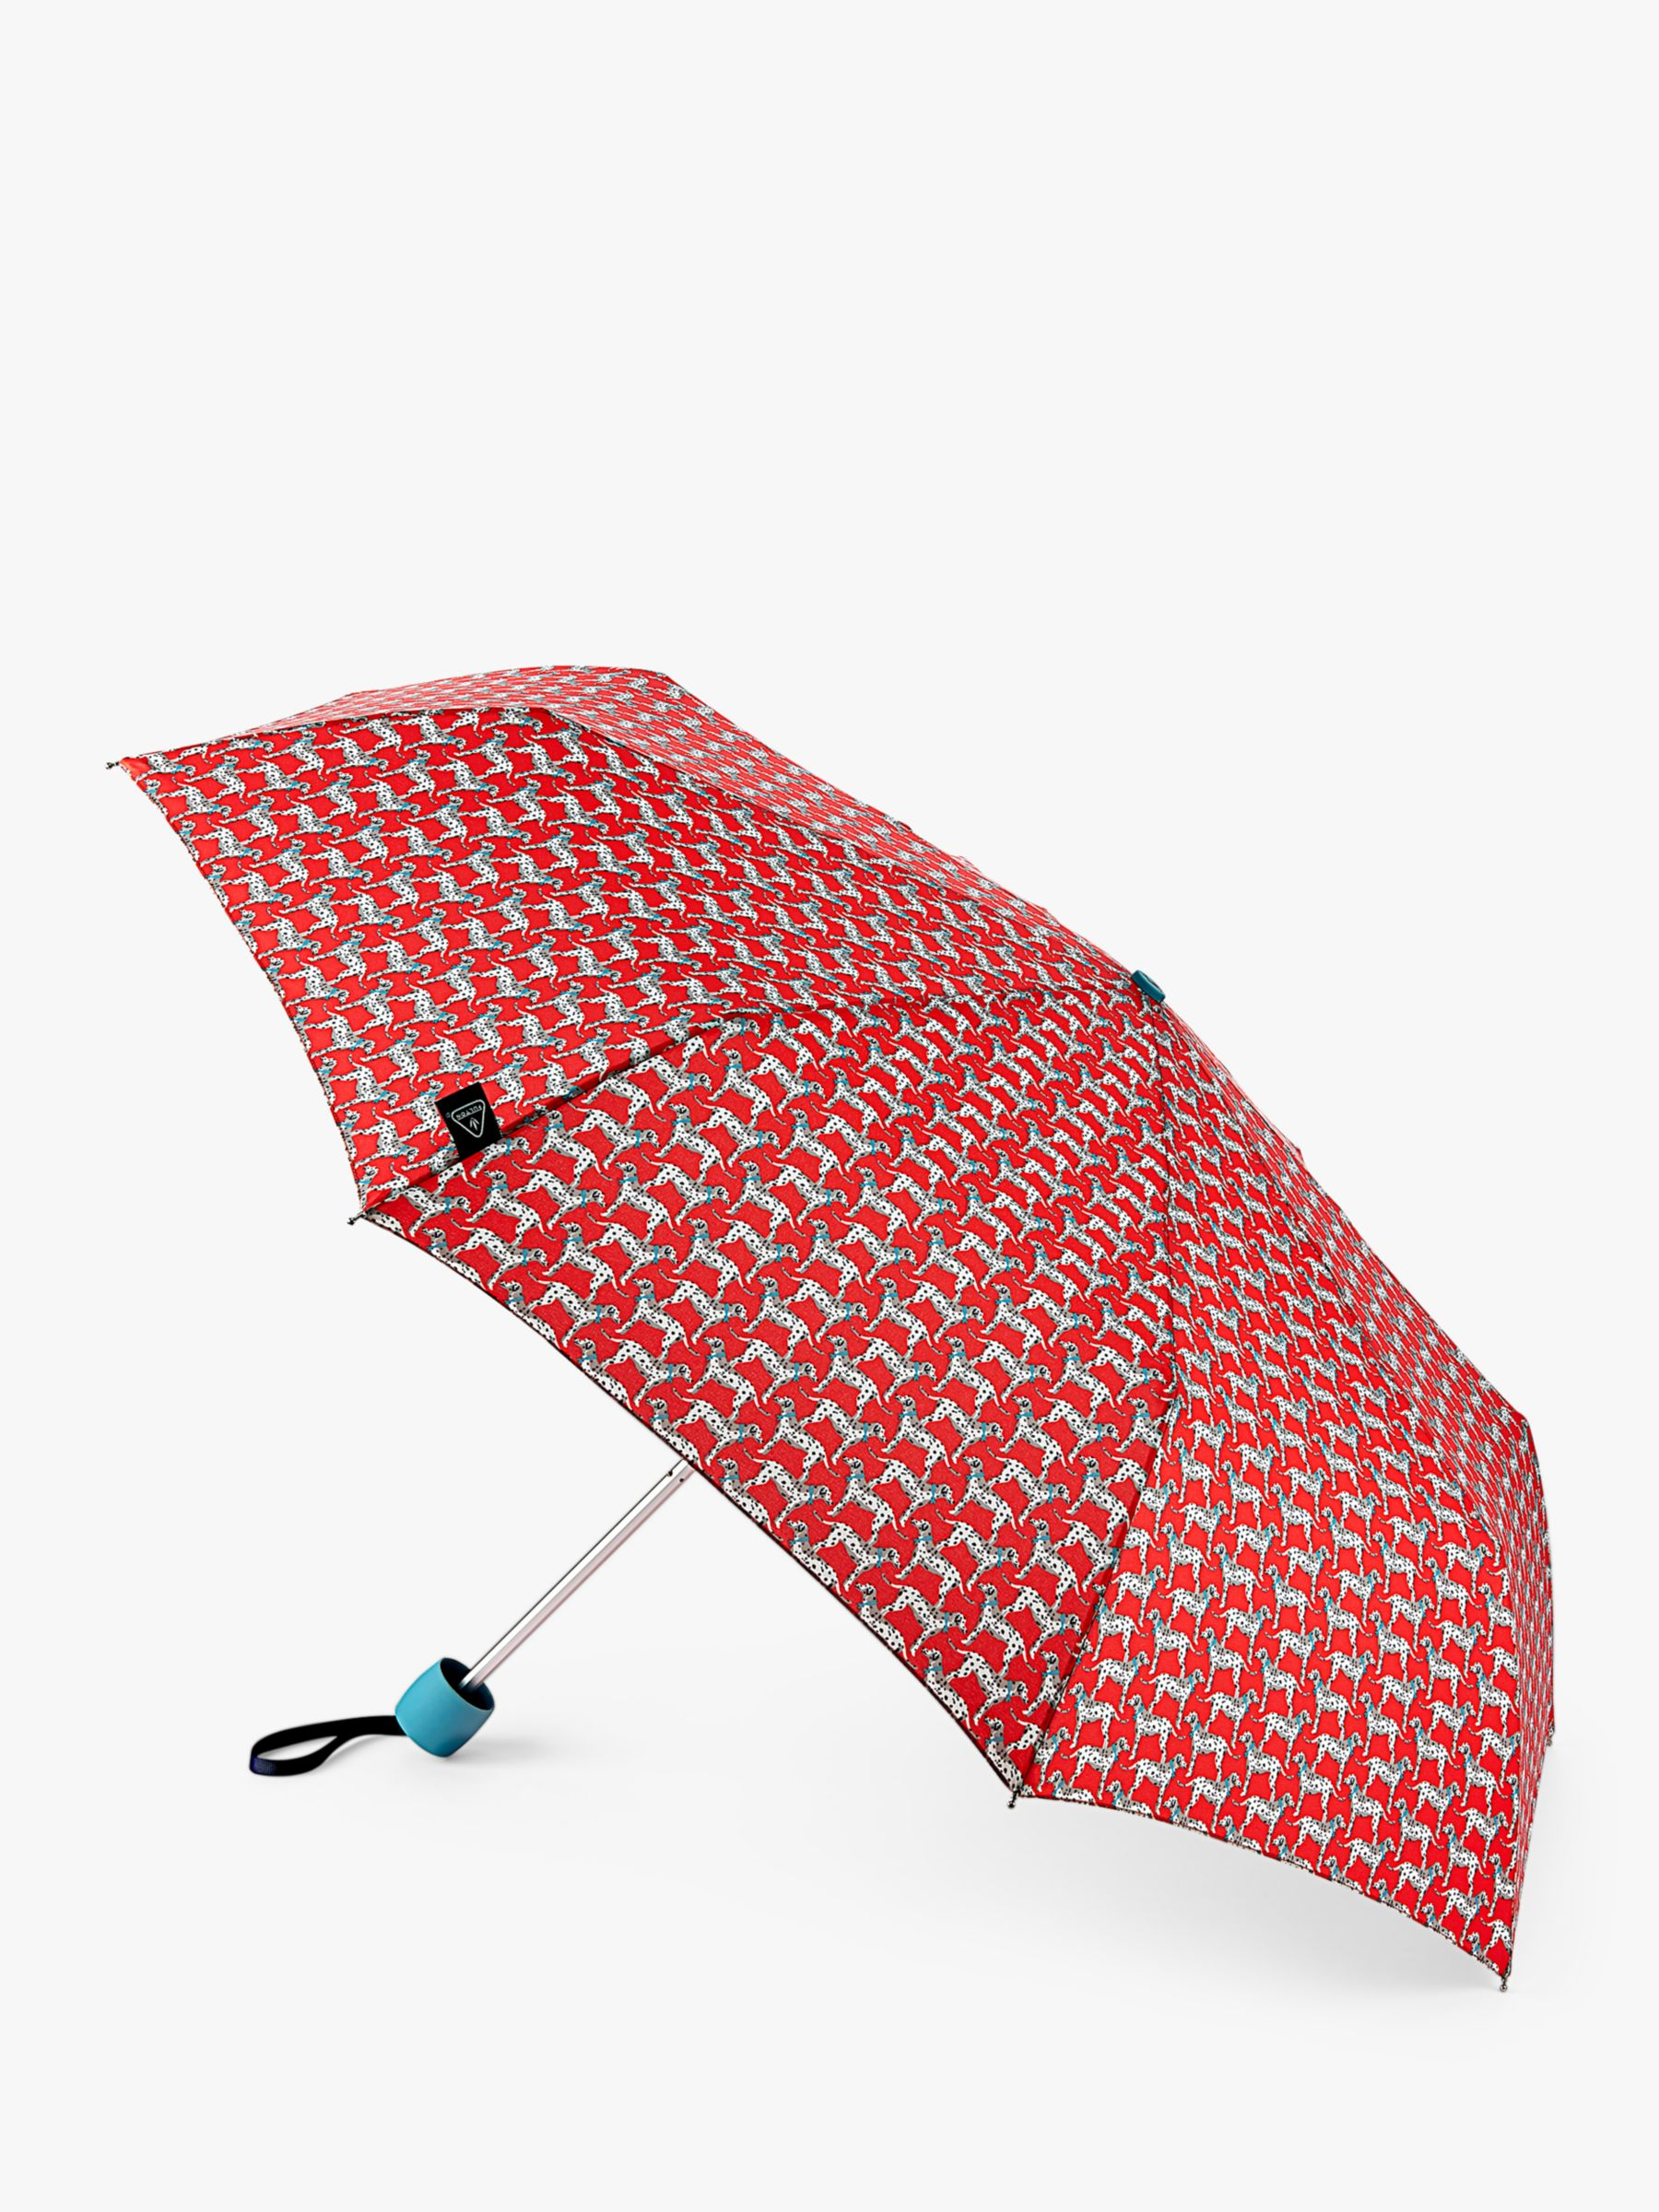 Fulton Fulton Dalmatian Geometric Telescopic Umbrella, Red